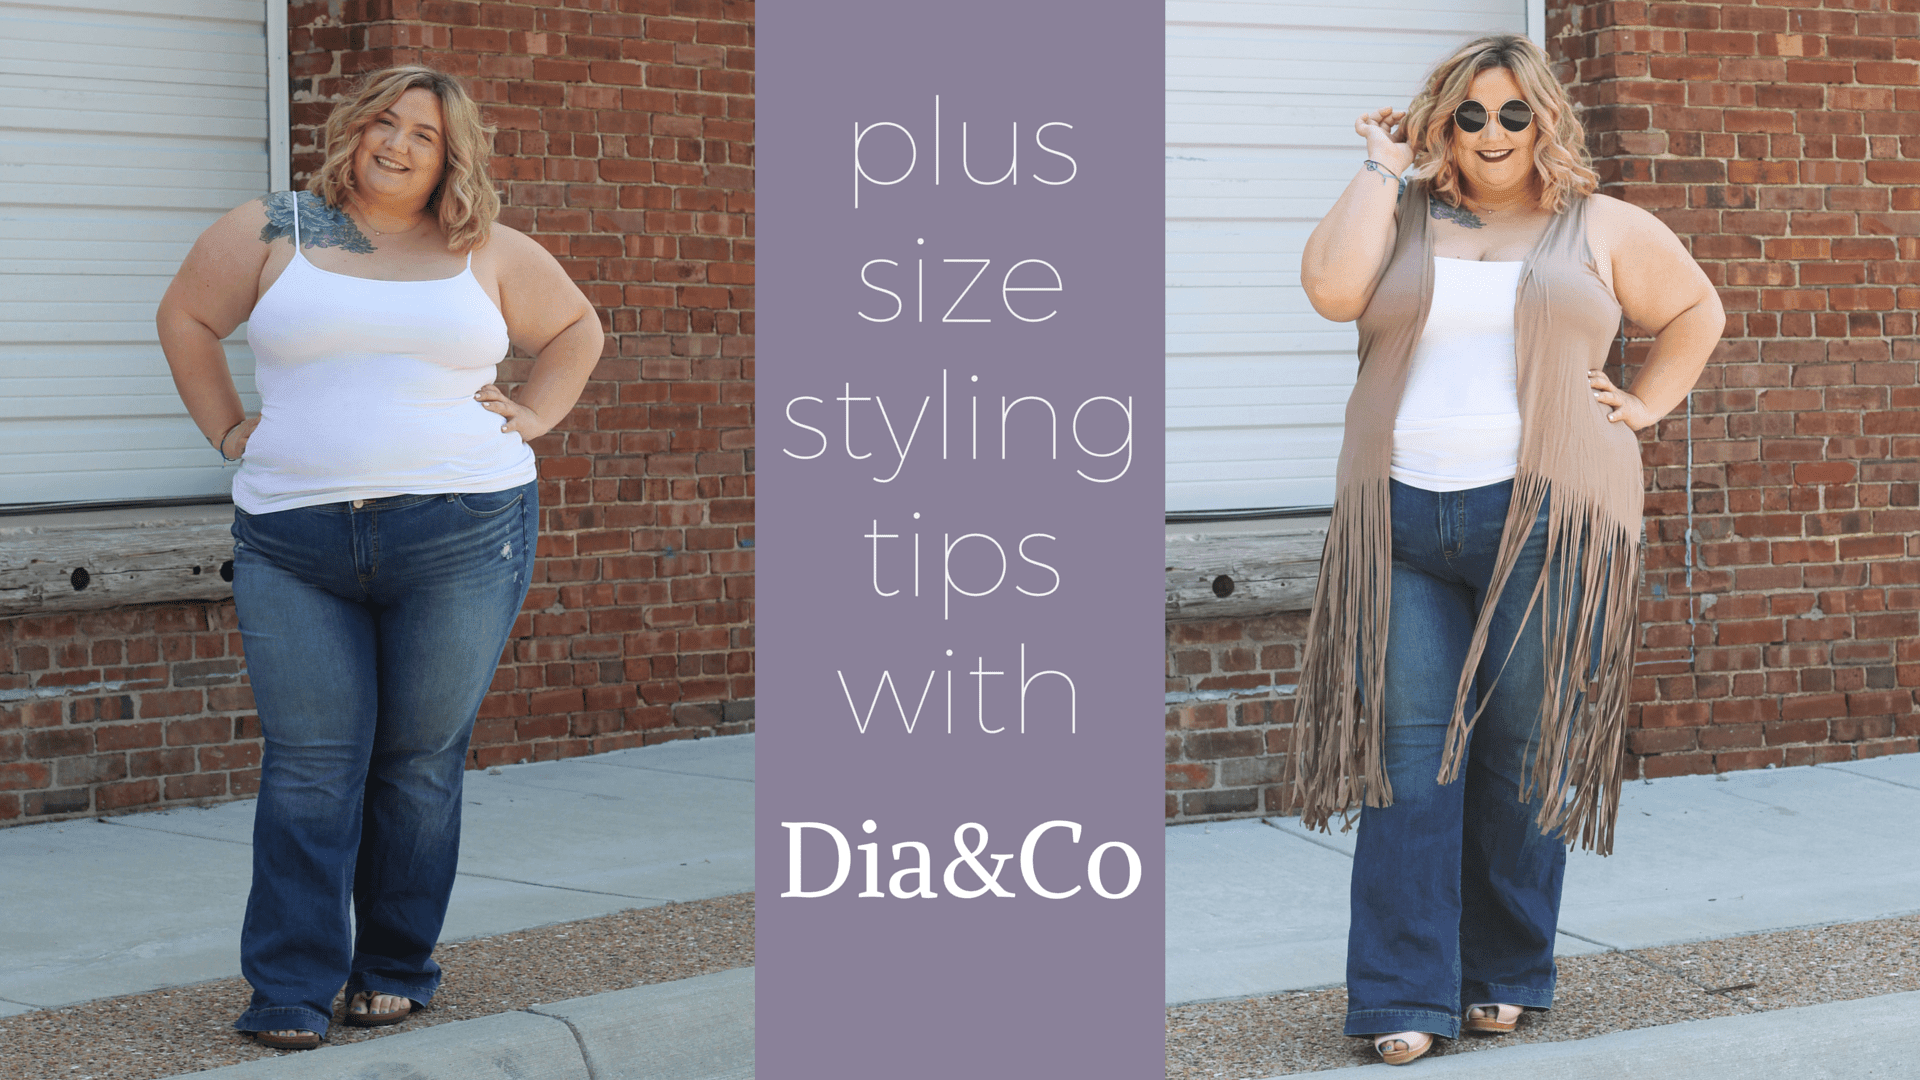 Ask A Plus Size Stylist With Dia&Co